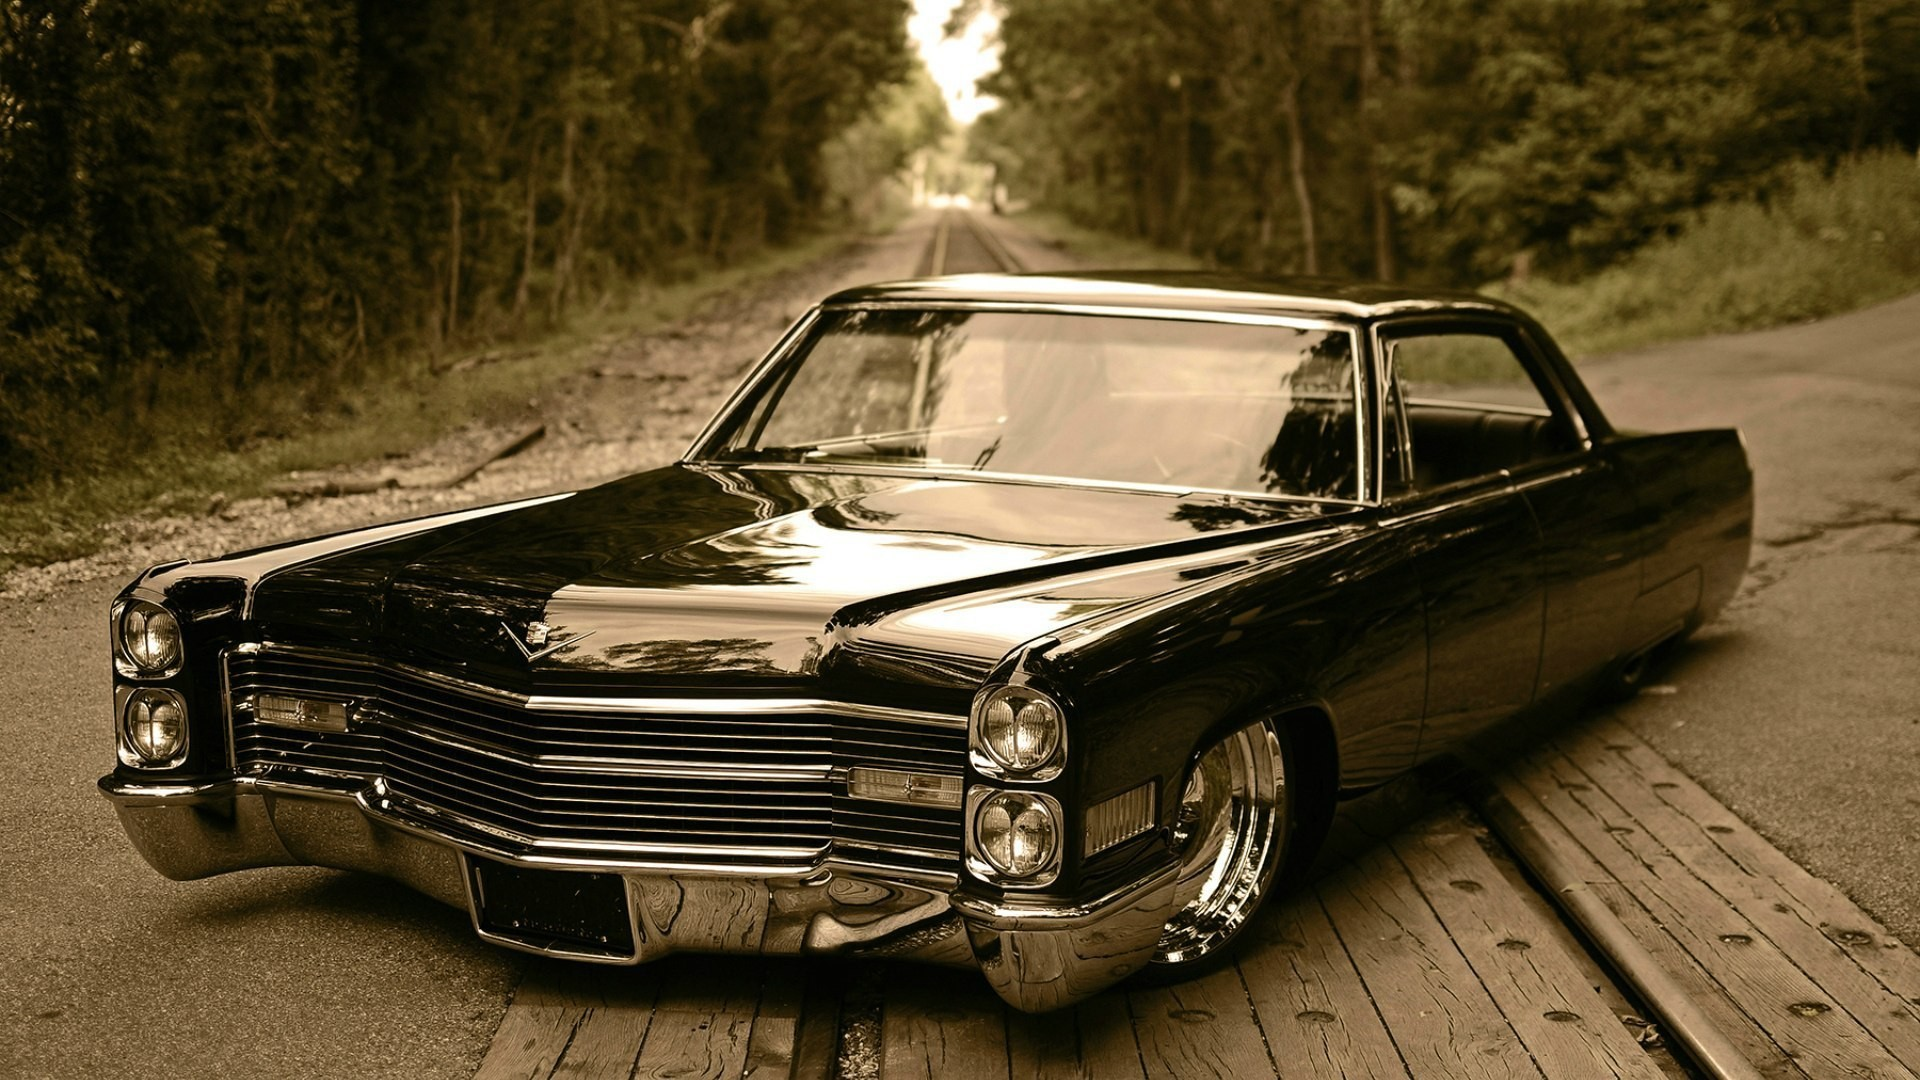 Res: 1920x1080, Nice wallpapers from Cadillac including some new models and the old  lowriders